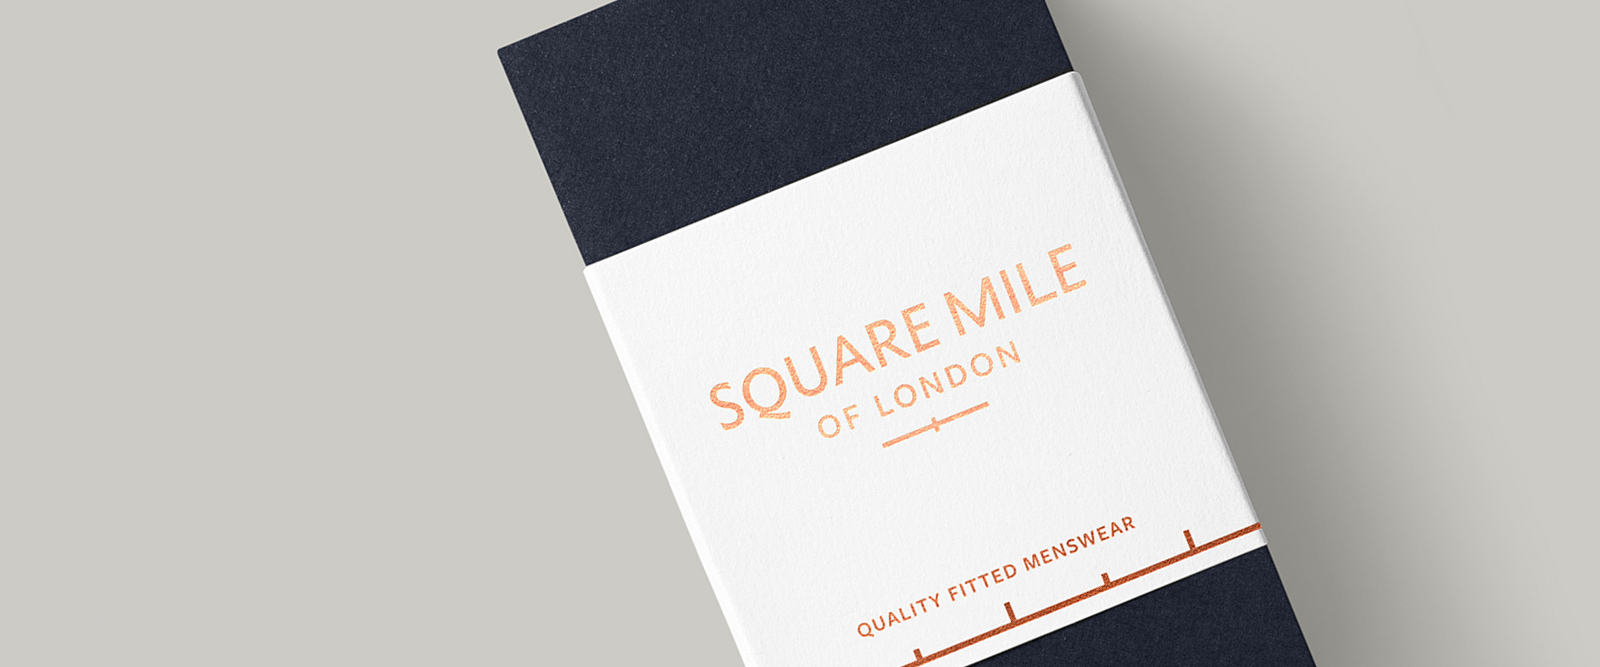 Square Mile of London branding